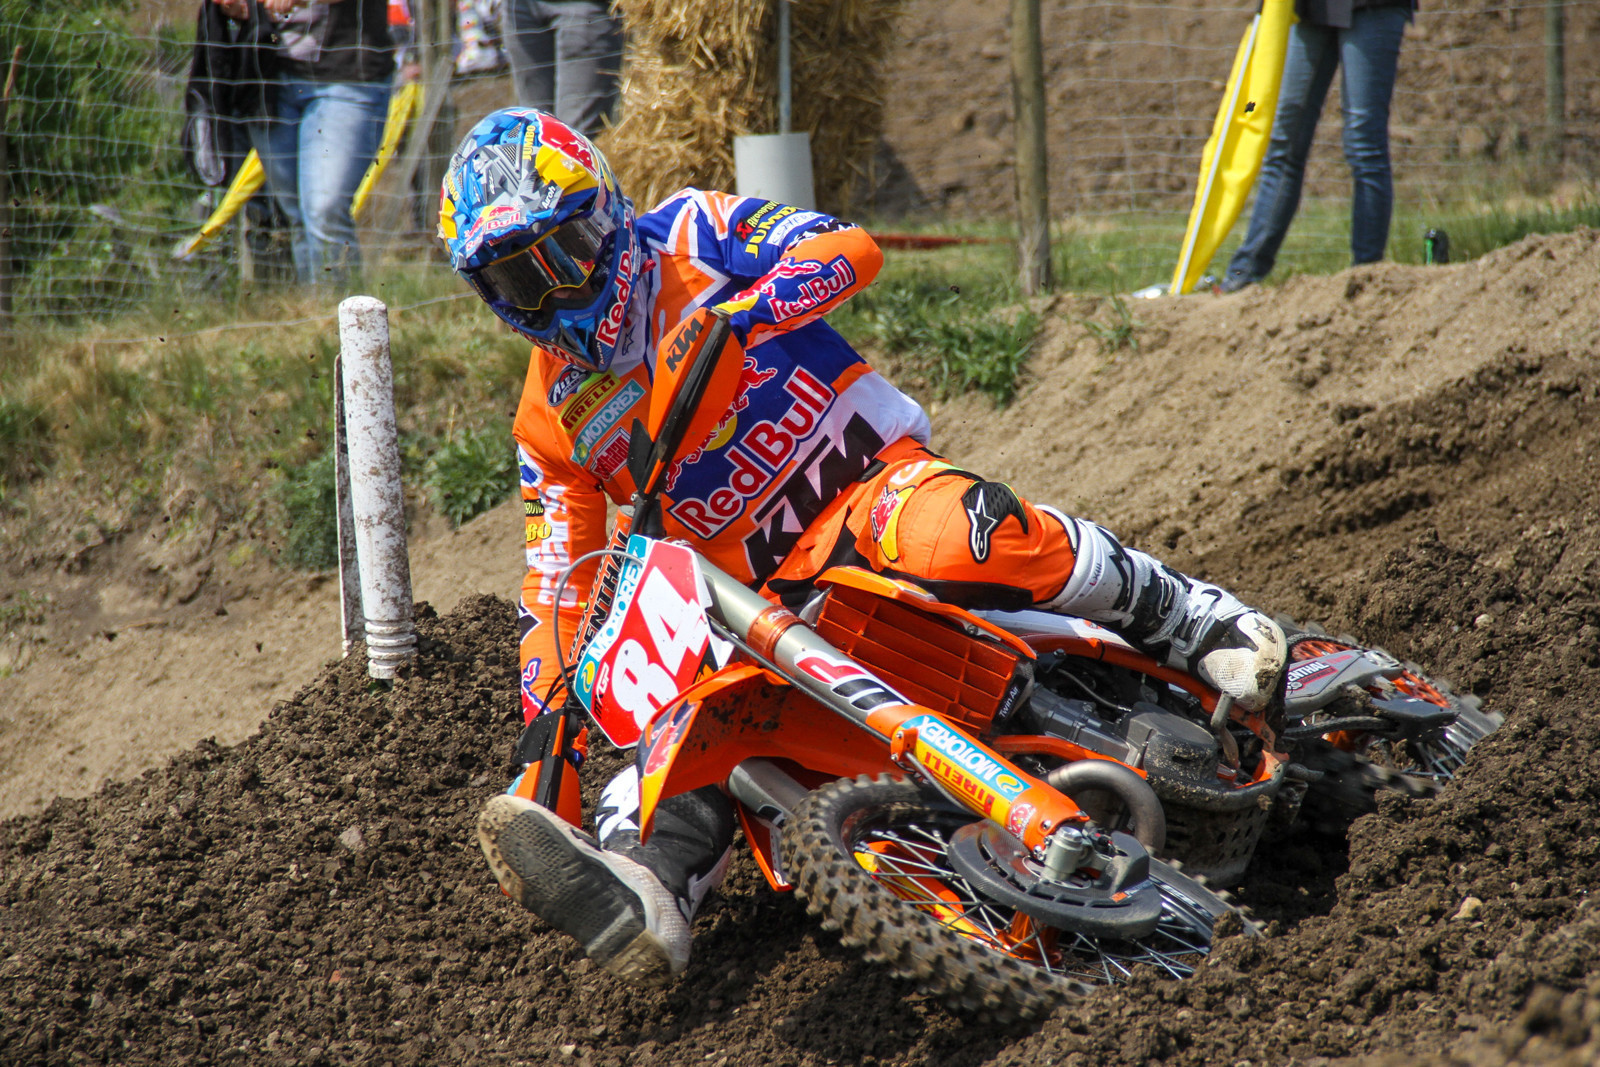 Injury Report: Jeffrey Herlings Breaks Collarbone in Practice Crash